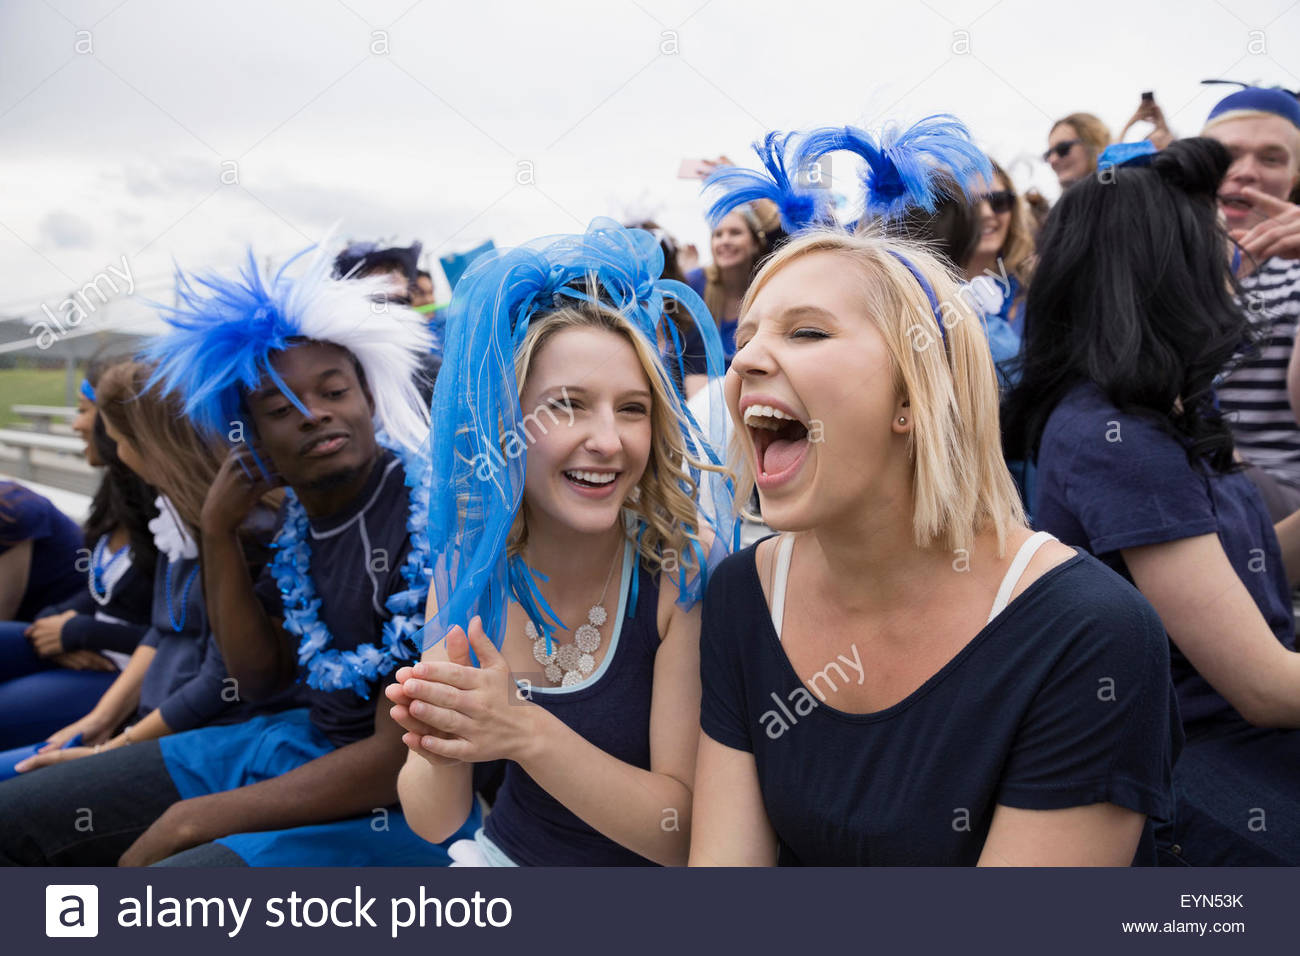 Enthusiastic woman screaming from bleachers at sports event - Stock Image